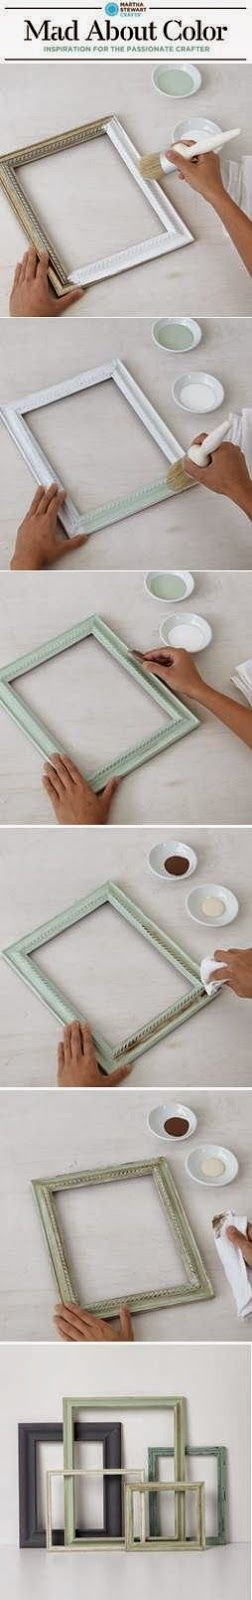 Make beautiful frames with Vintage Decor Paint and Wax